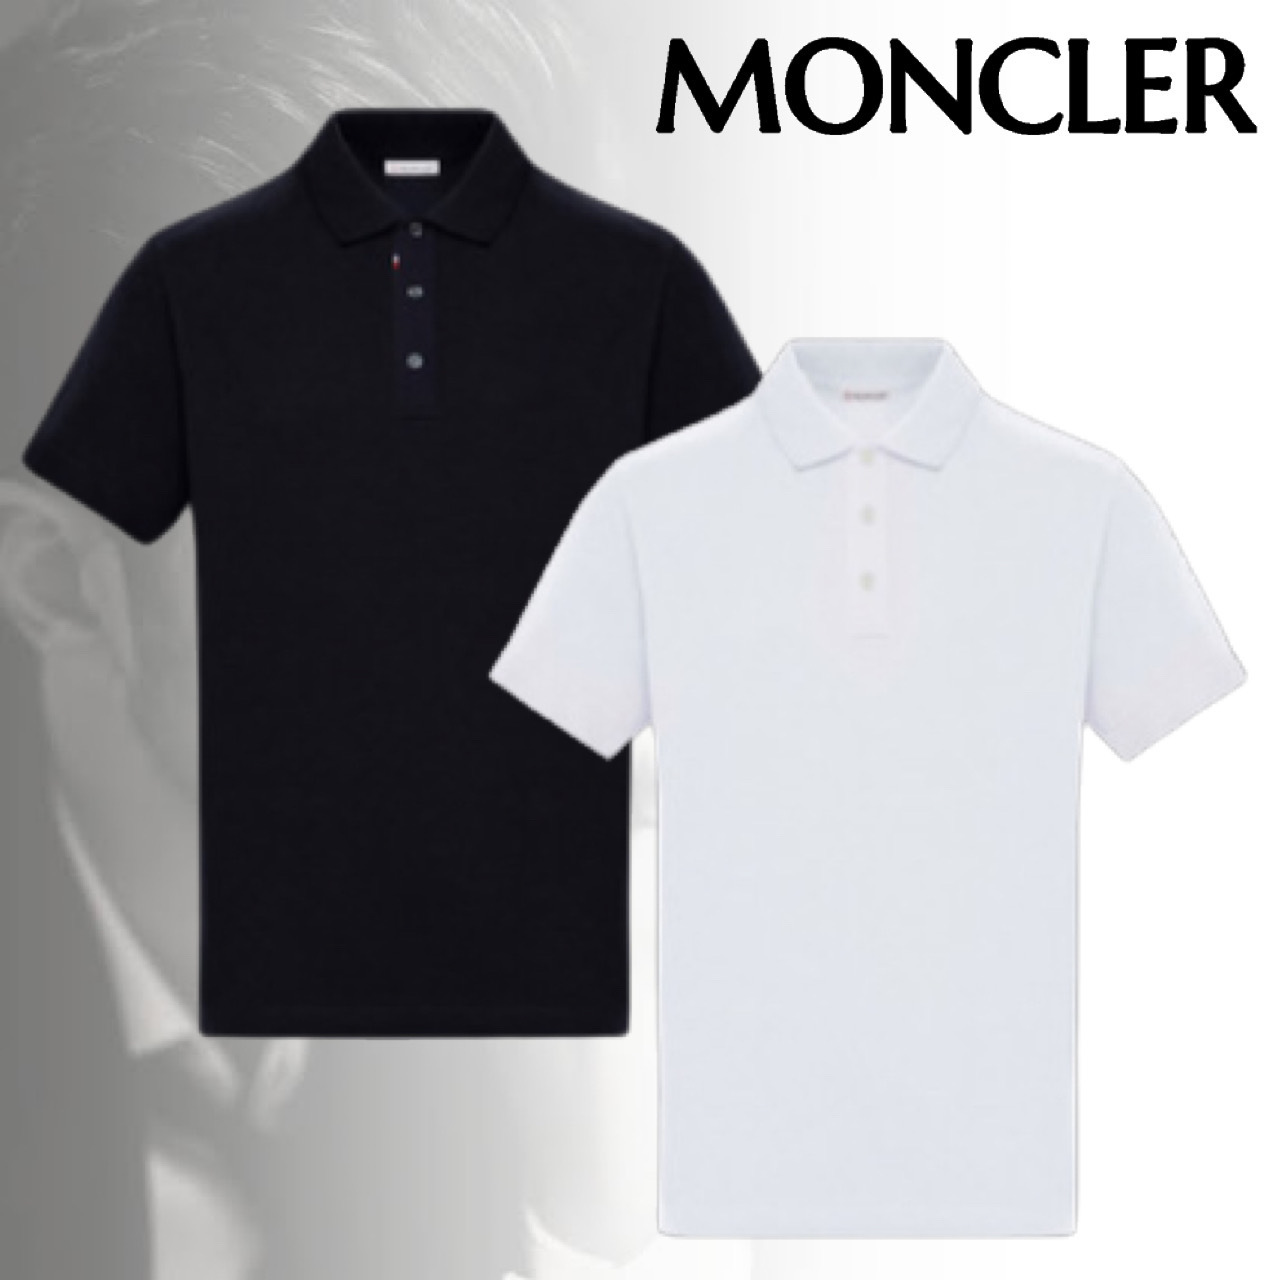 MONCLER モンクレール POLO ポロシャツ 半袖 ロゴ トリコロール (MONCLER/ポロシャツ) 64418506